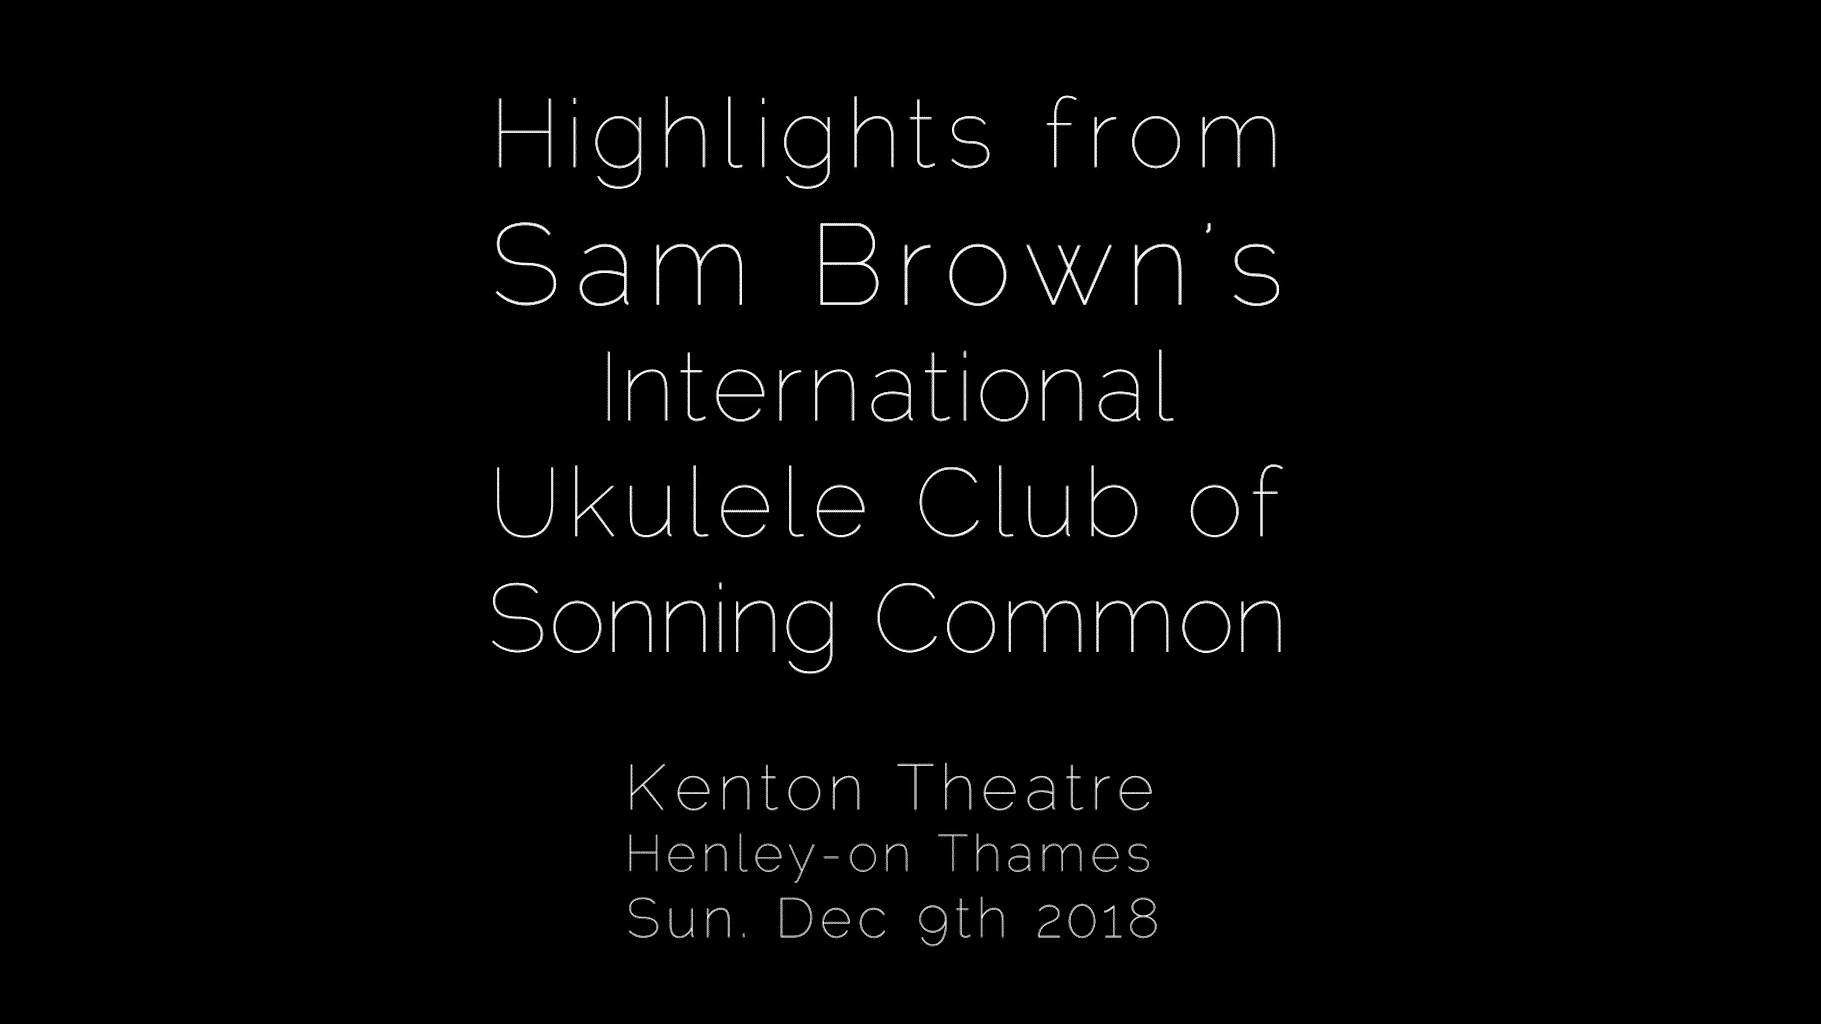 Video and lighting for Sam Brown's Ukulele club at Kenton Theatrekulele club perform